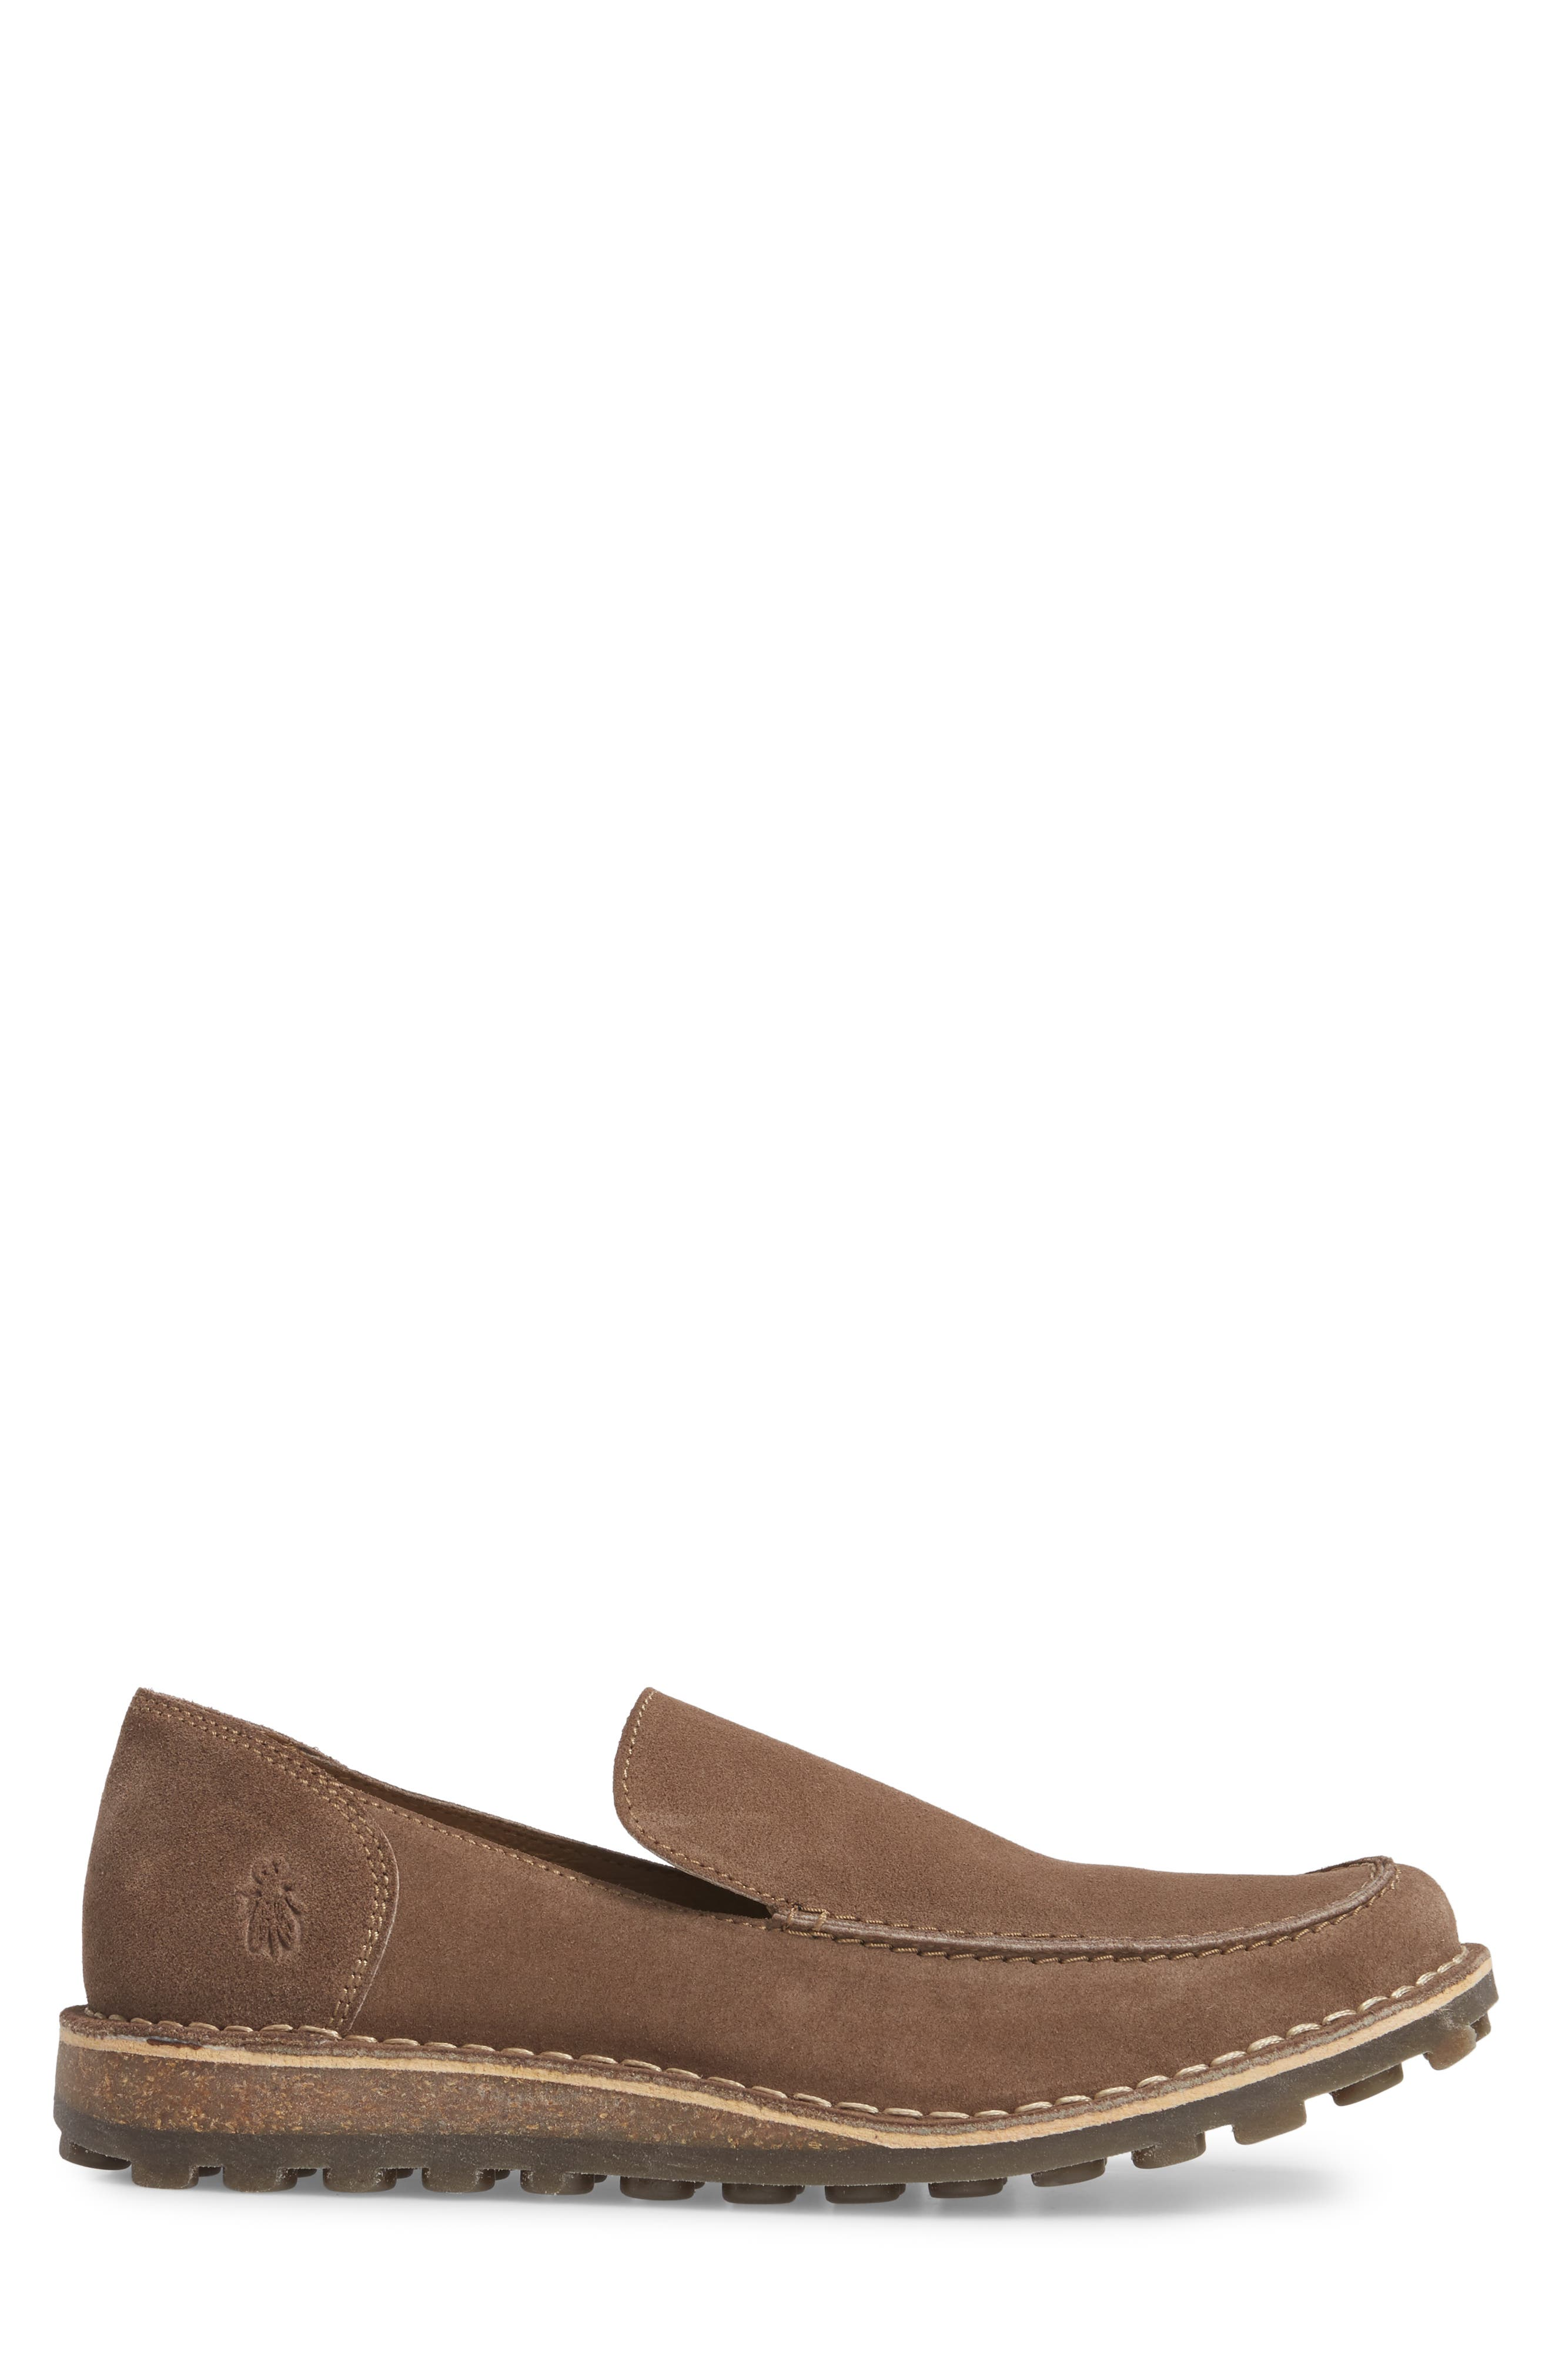 Meve Moc Toe Loafer,                             Alternate thumbnail 3, color,                             Taupe Suede